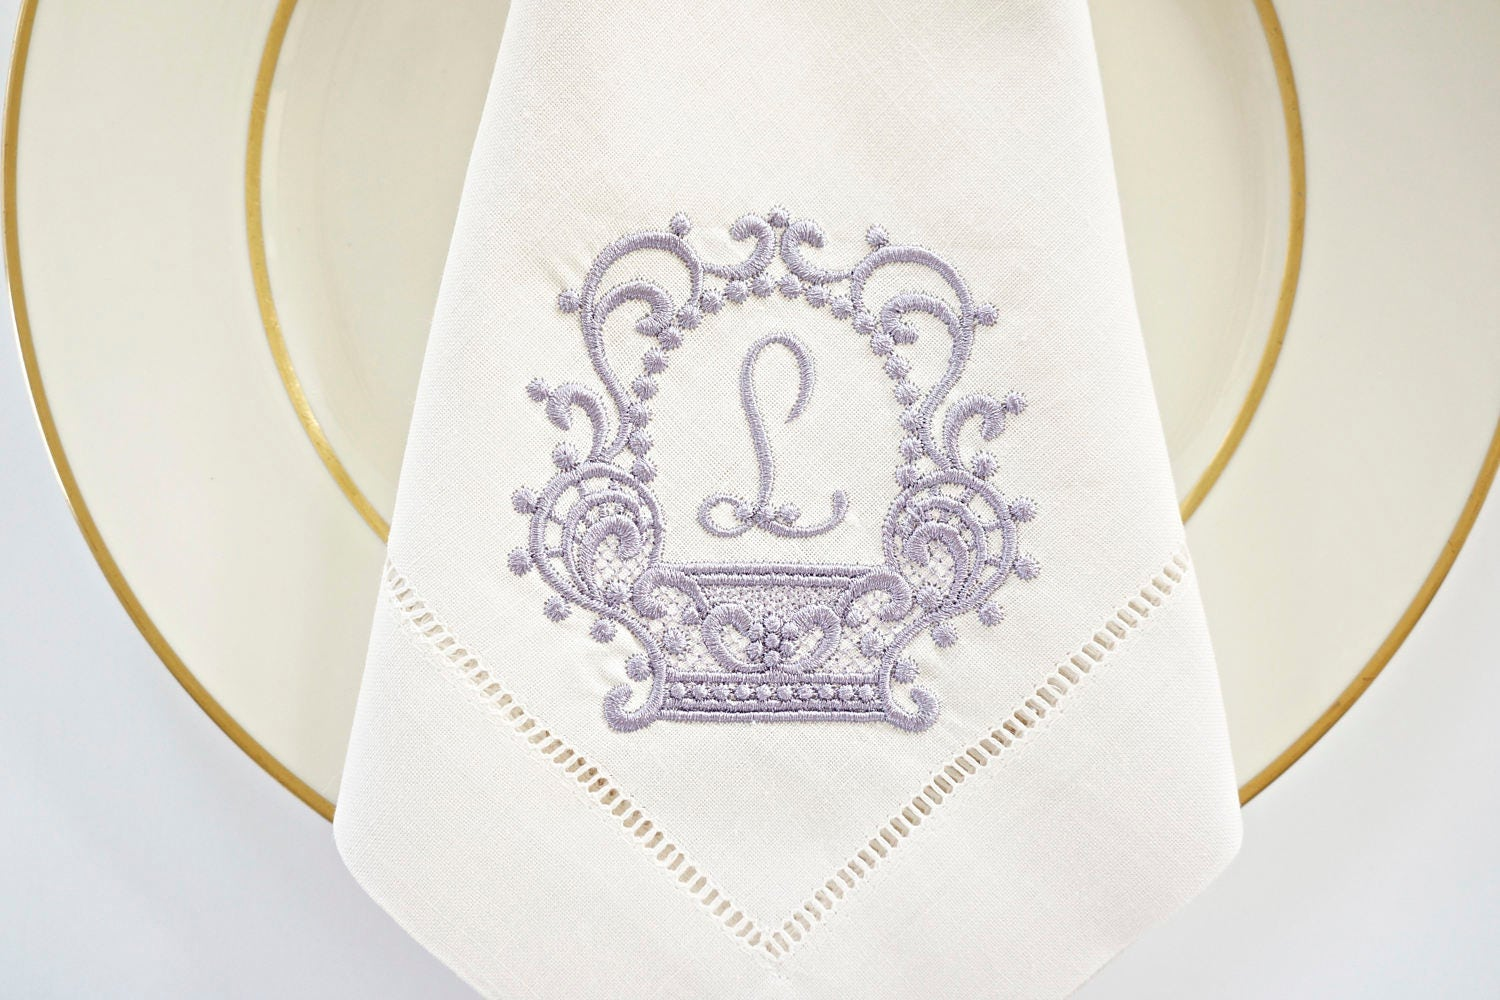 Bridal Lace Monogram Embroidered Napkins In Cotton Or French Linen Hemstitched Or Linen Towel Wedding And Bridal Shower Gift Hostess Gift